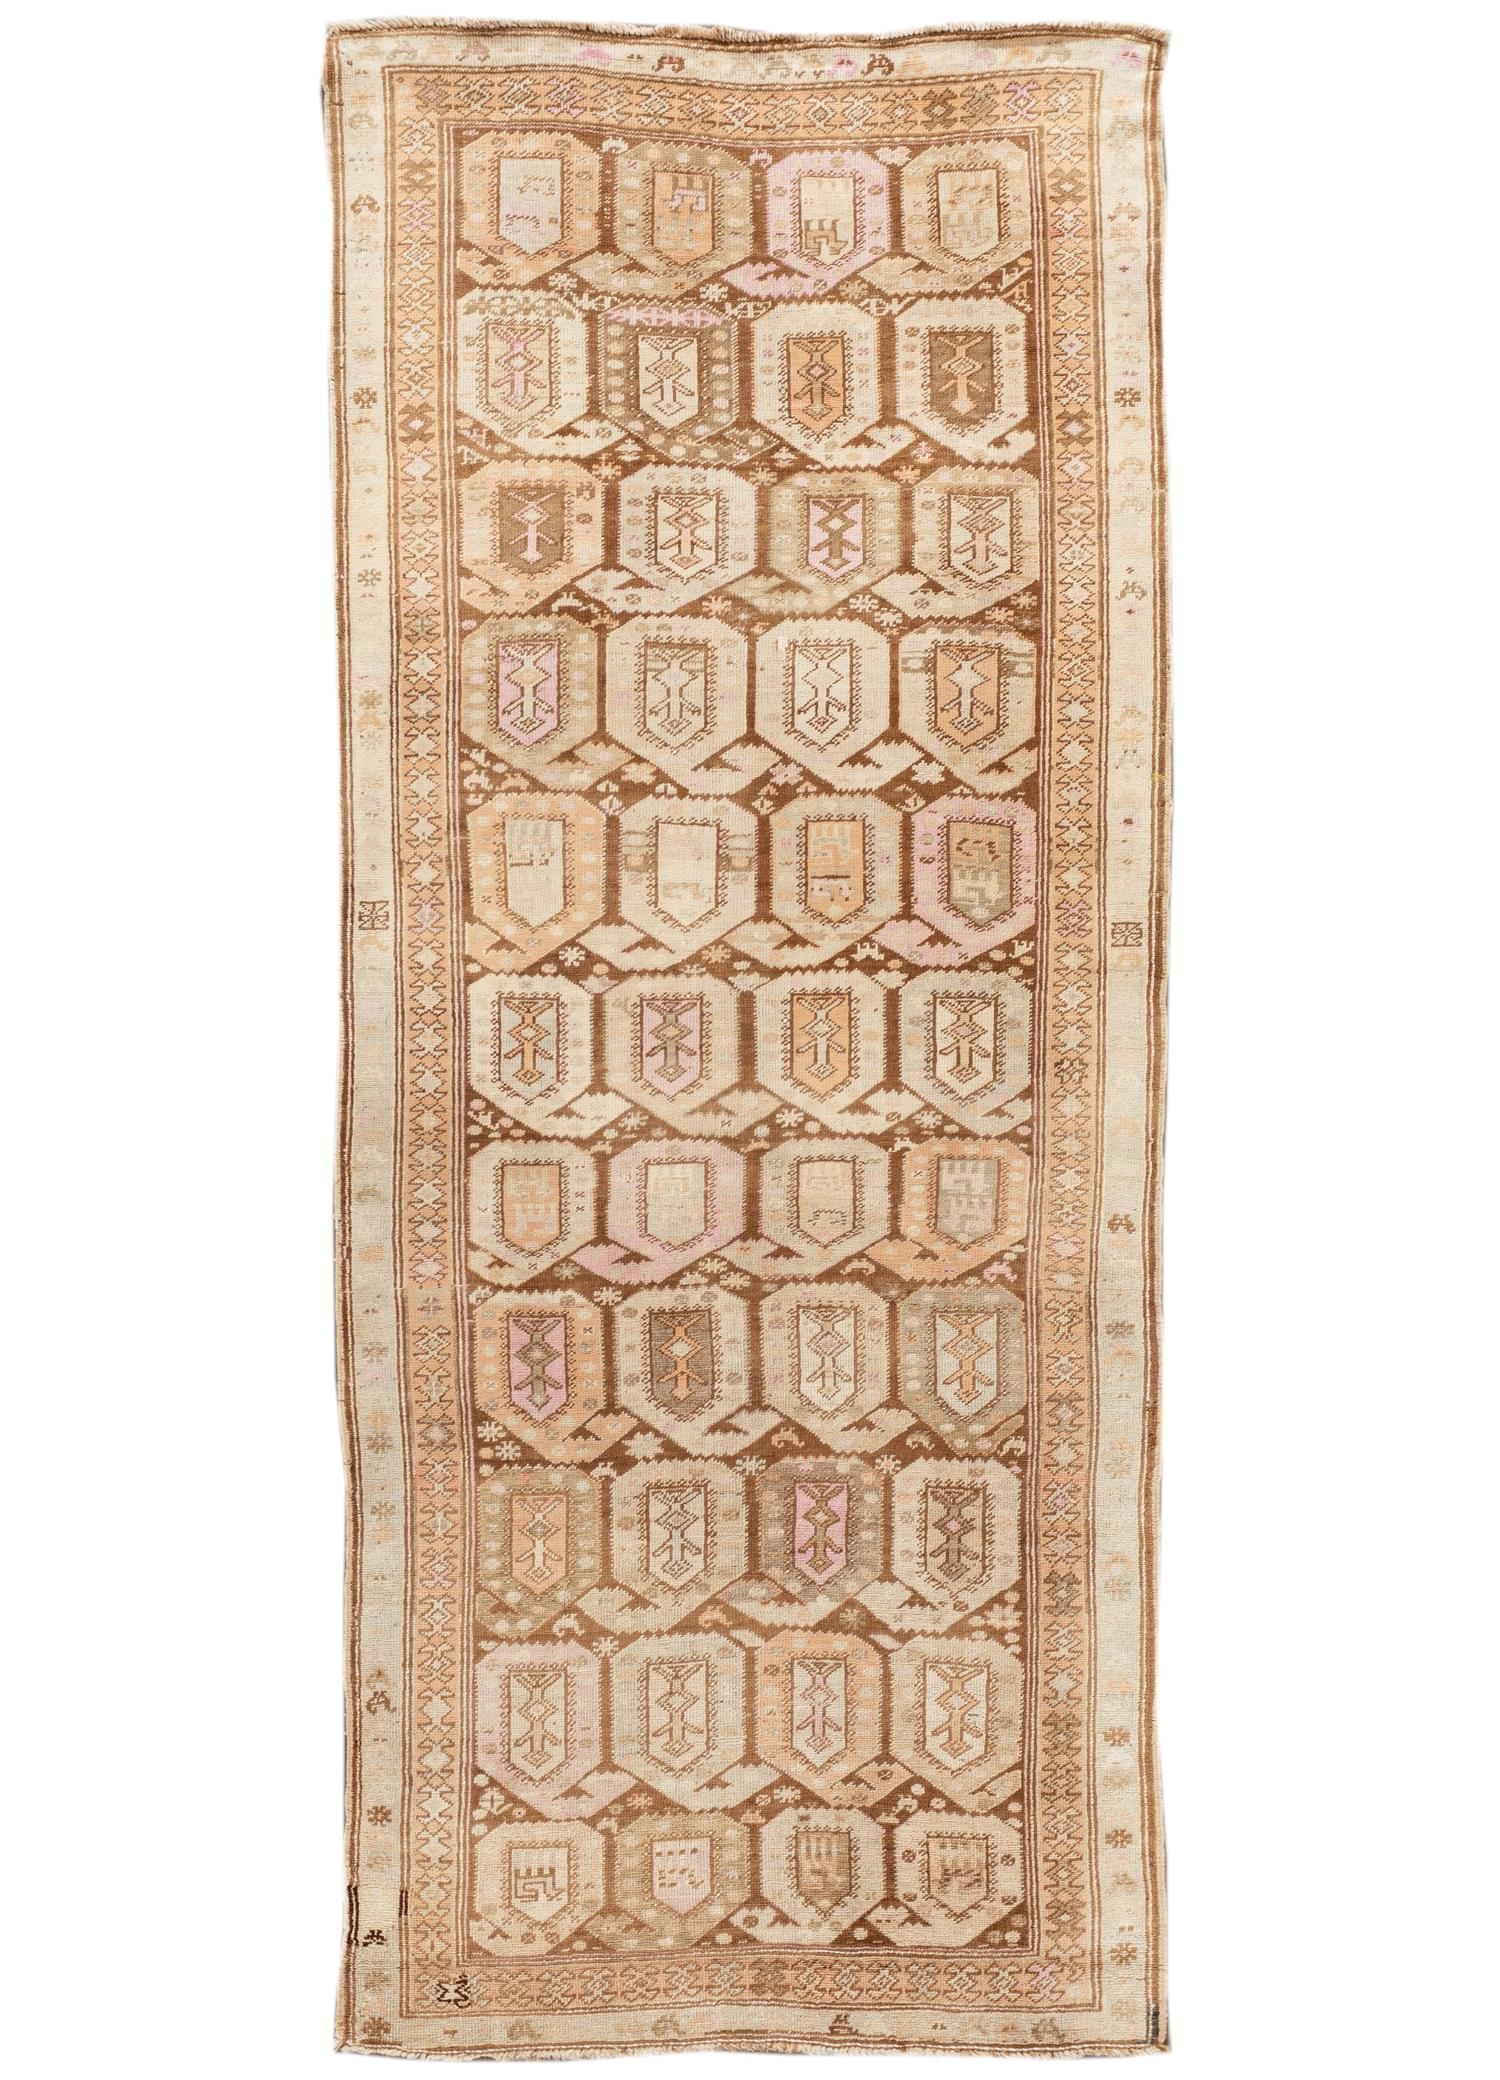 Antique Karabaugh Rug, #10235254, 4X10